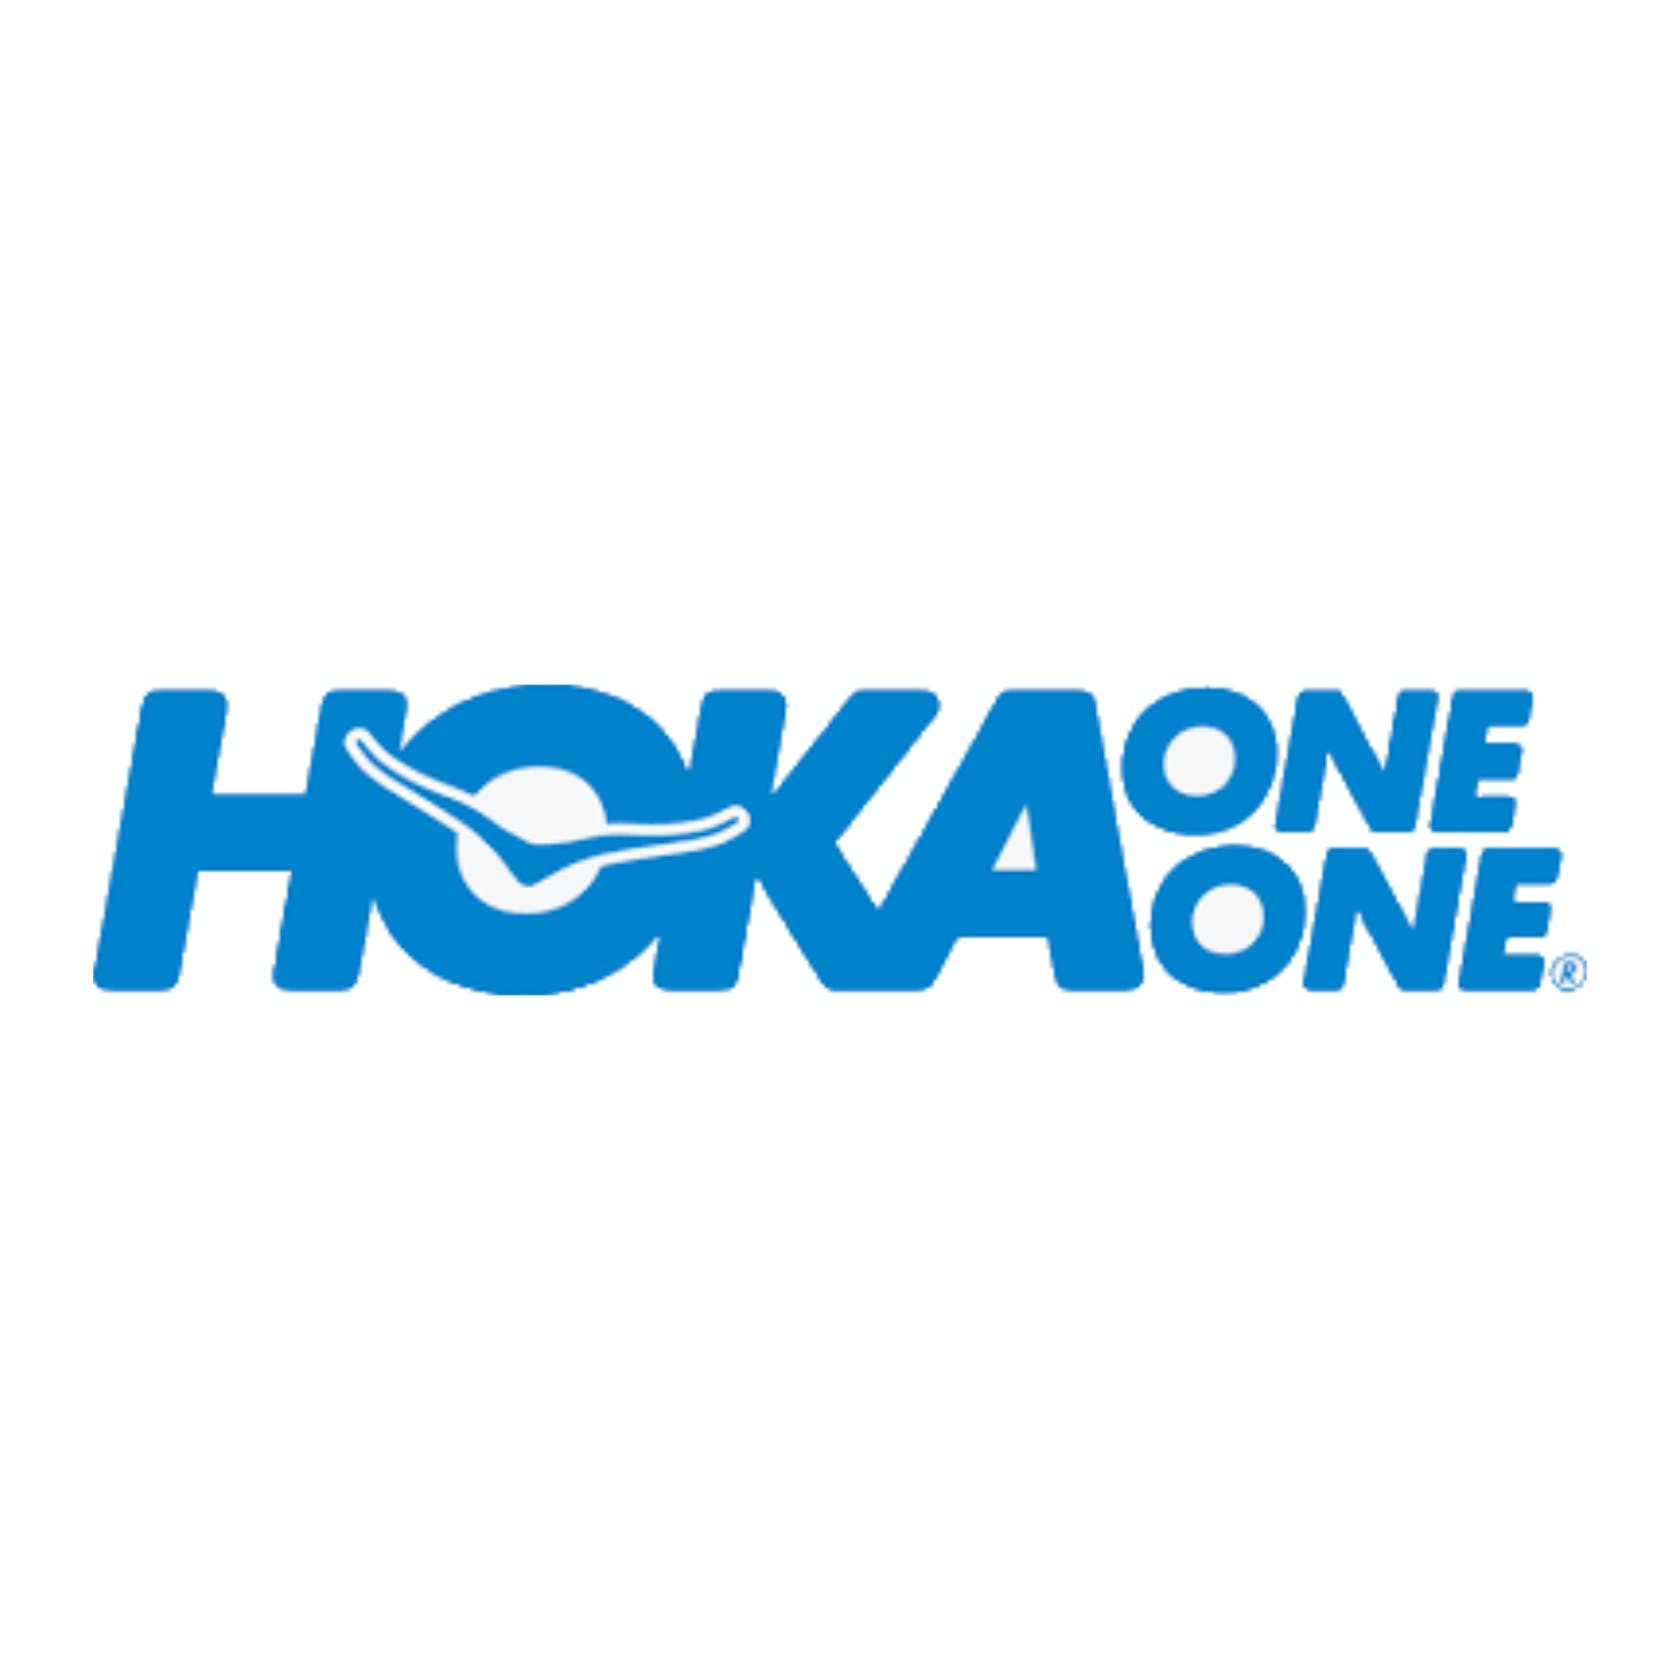 Hoka One One Onlineshop